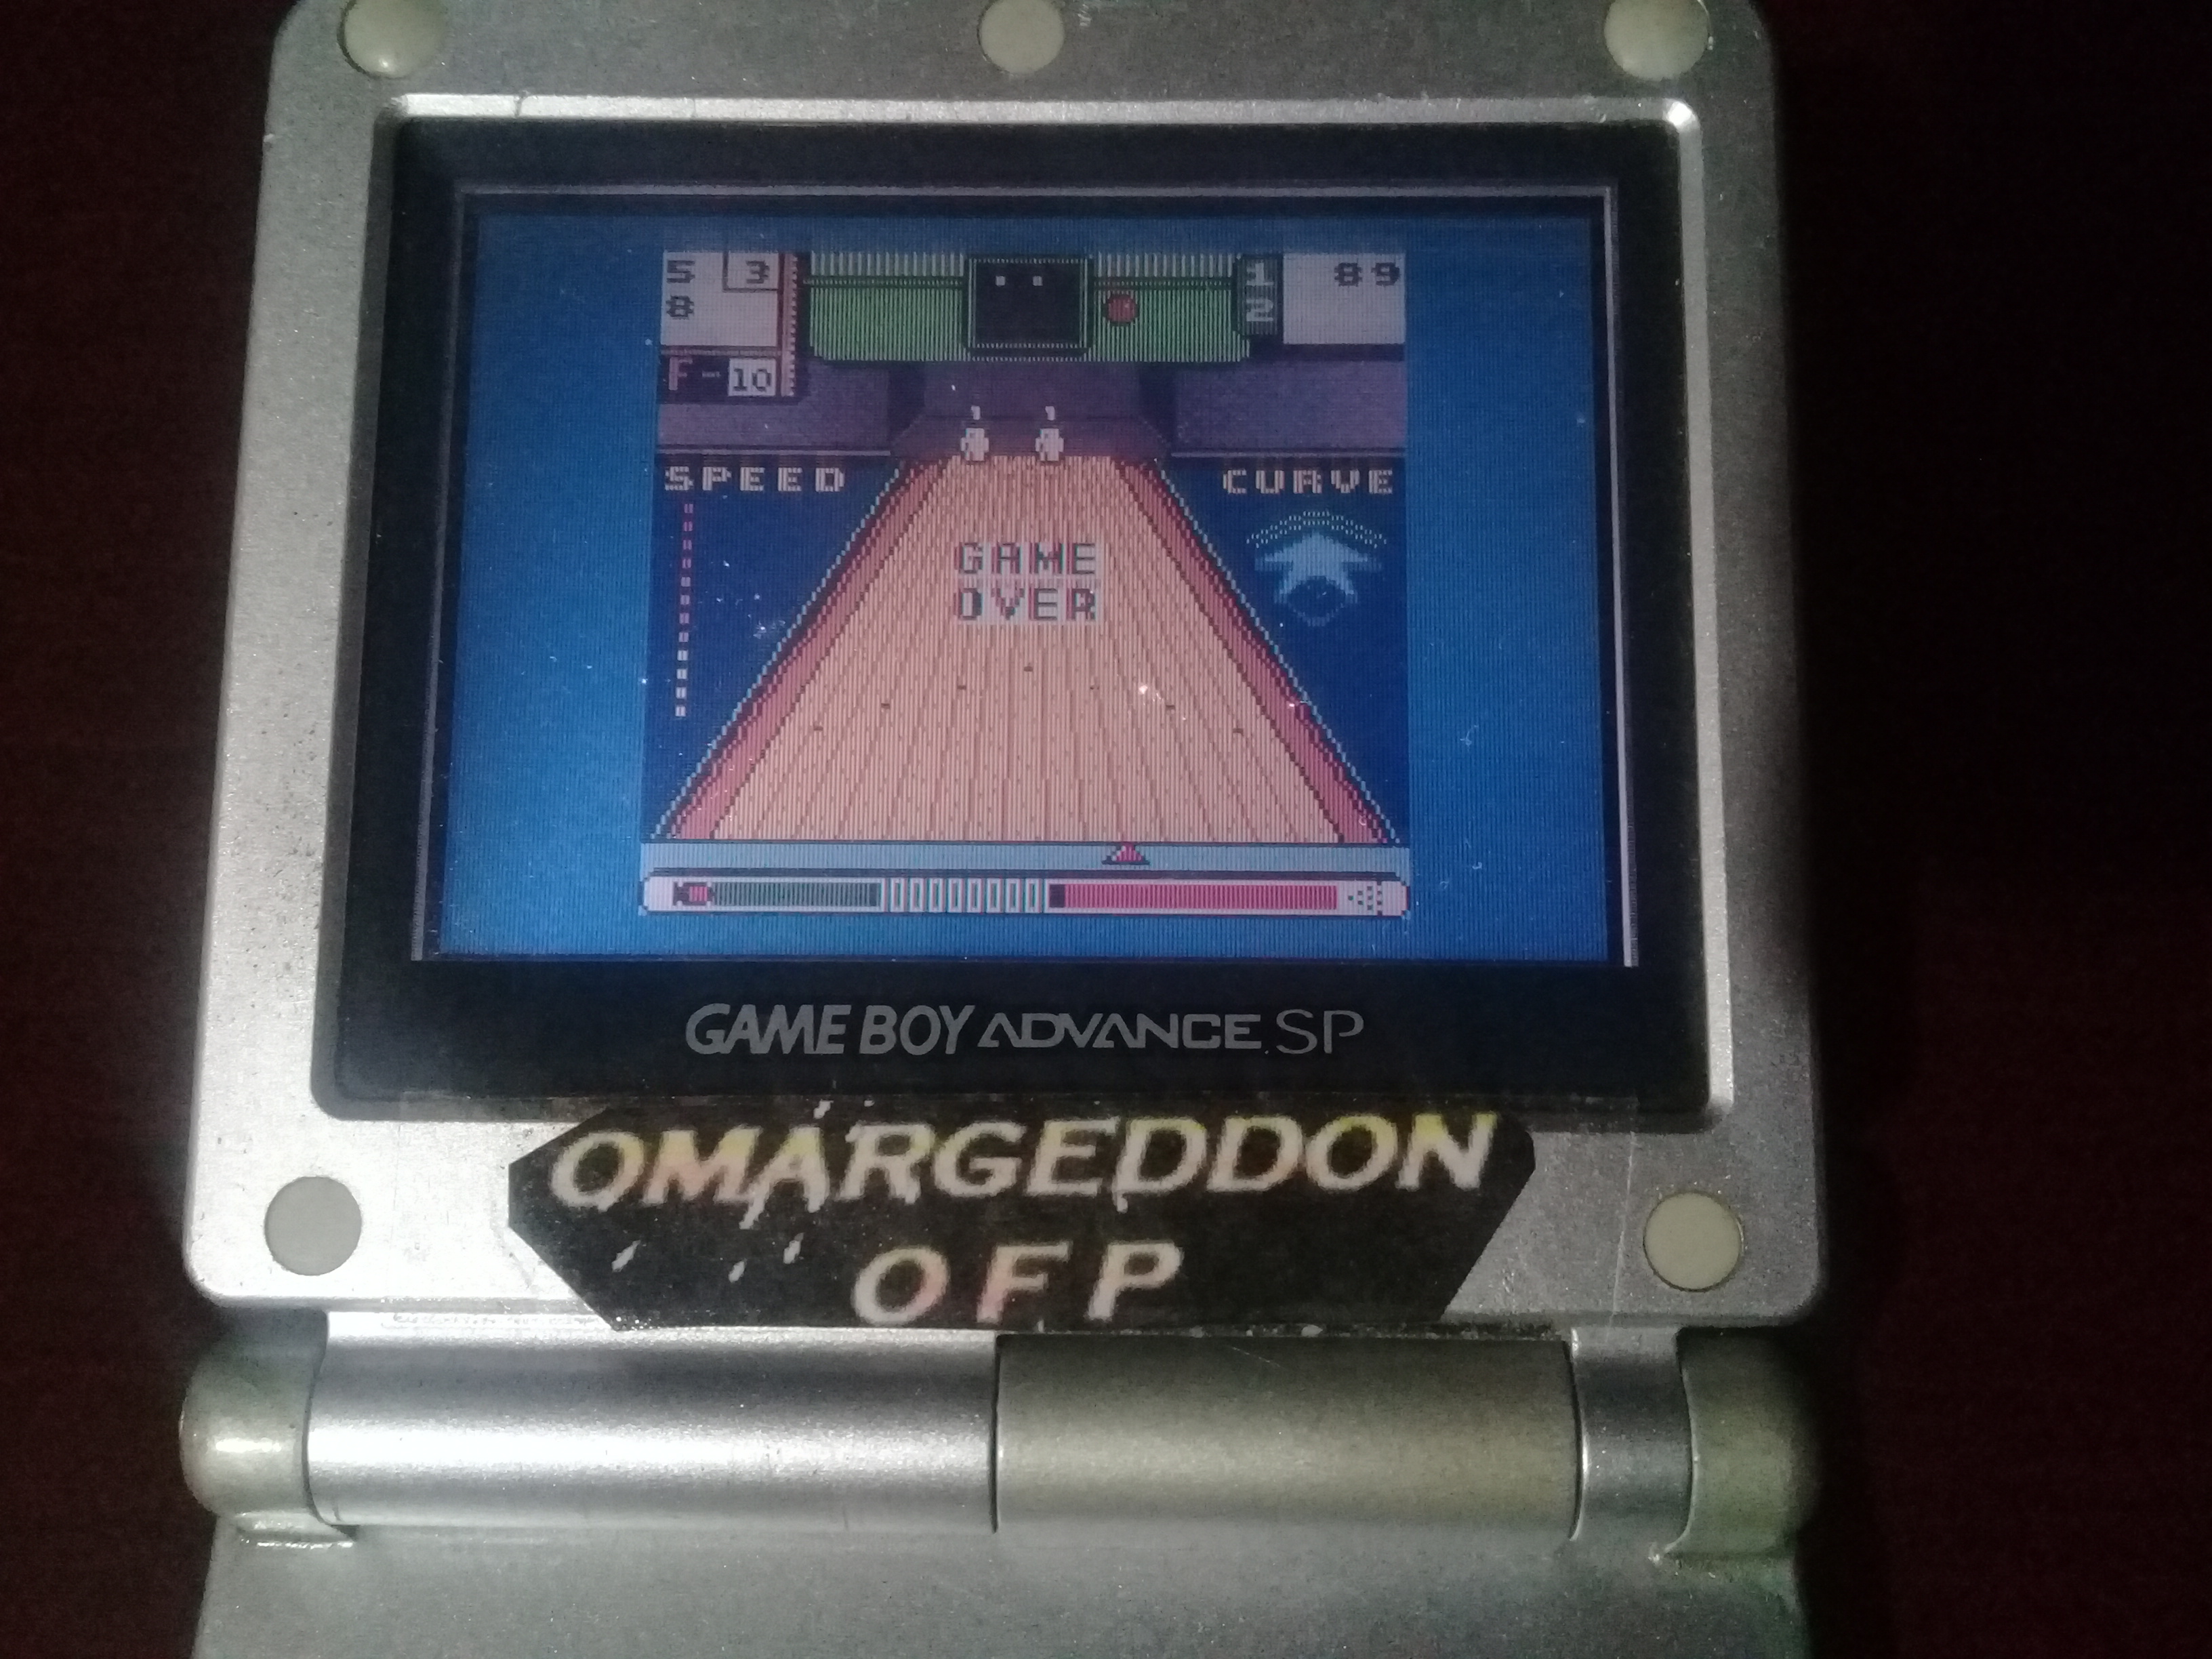 omargeddon: 10-Pin Bowling (Game Boy Color) 89 points on 2019-01-12 23:37:27